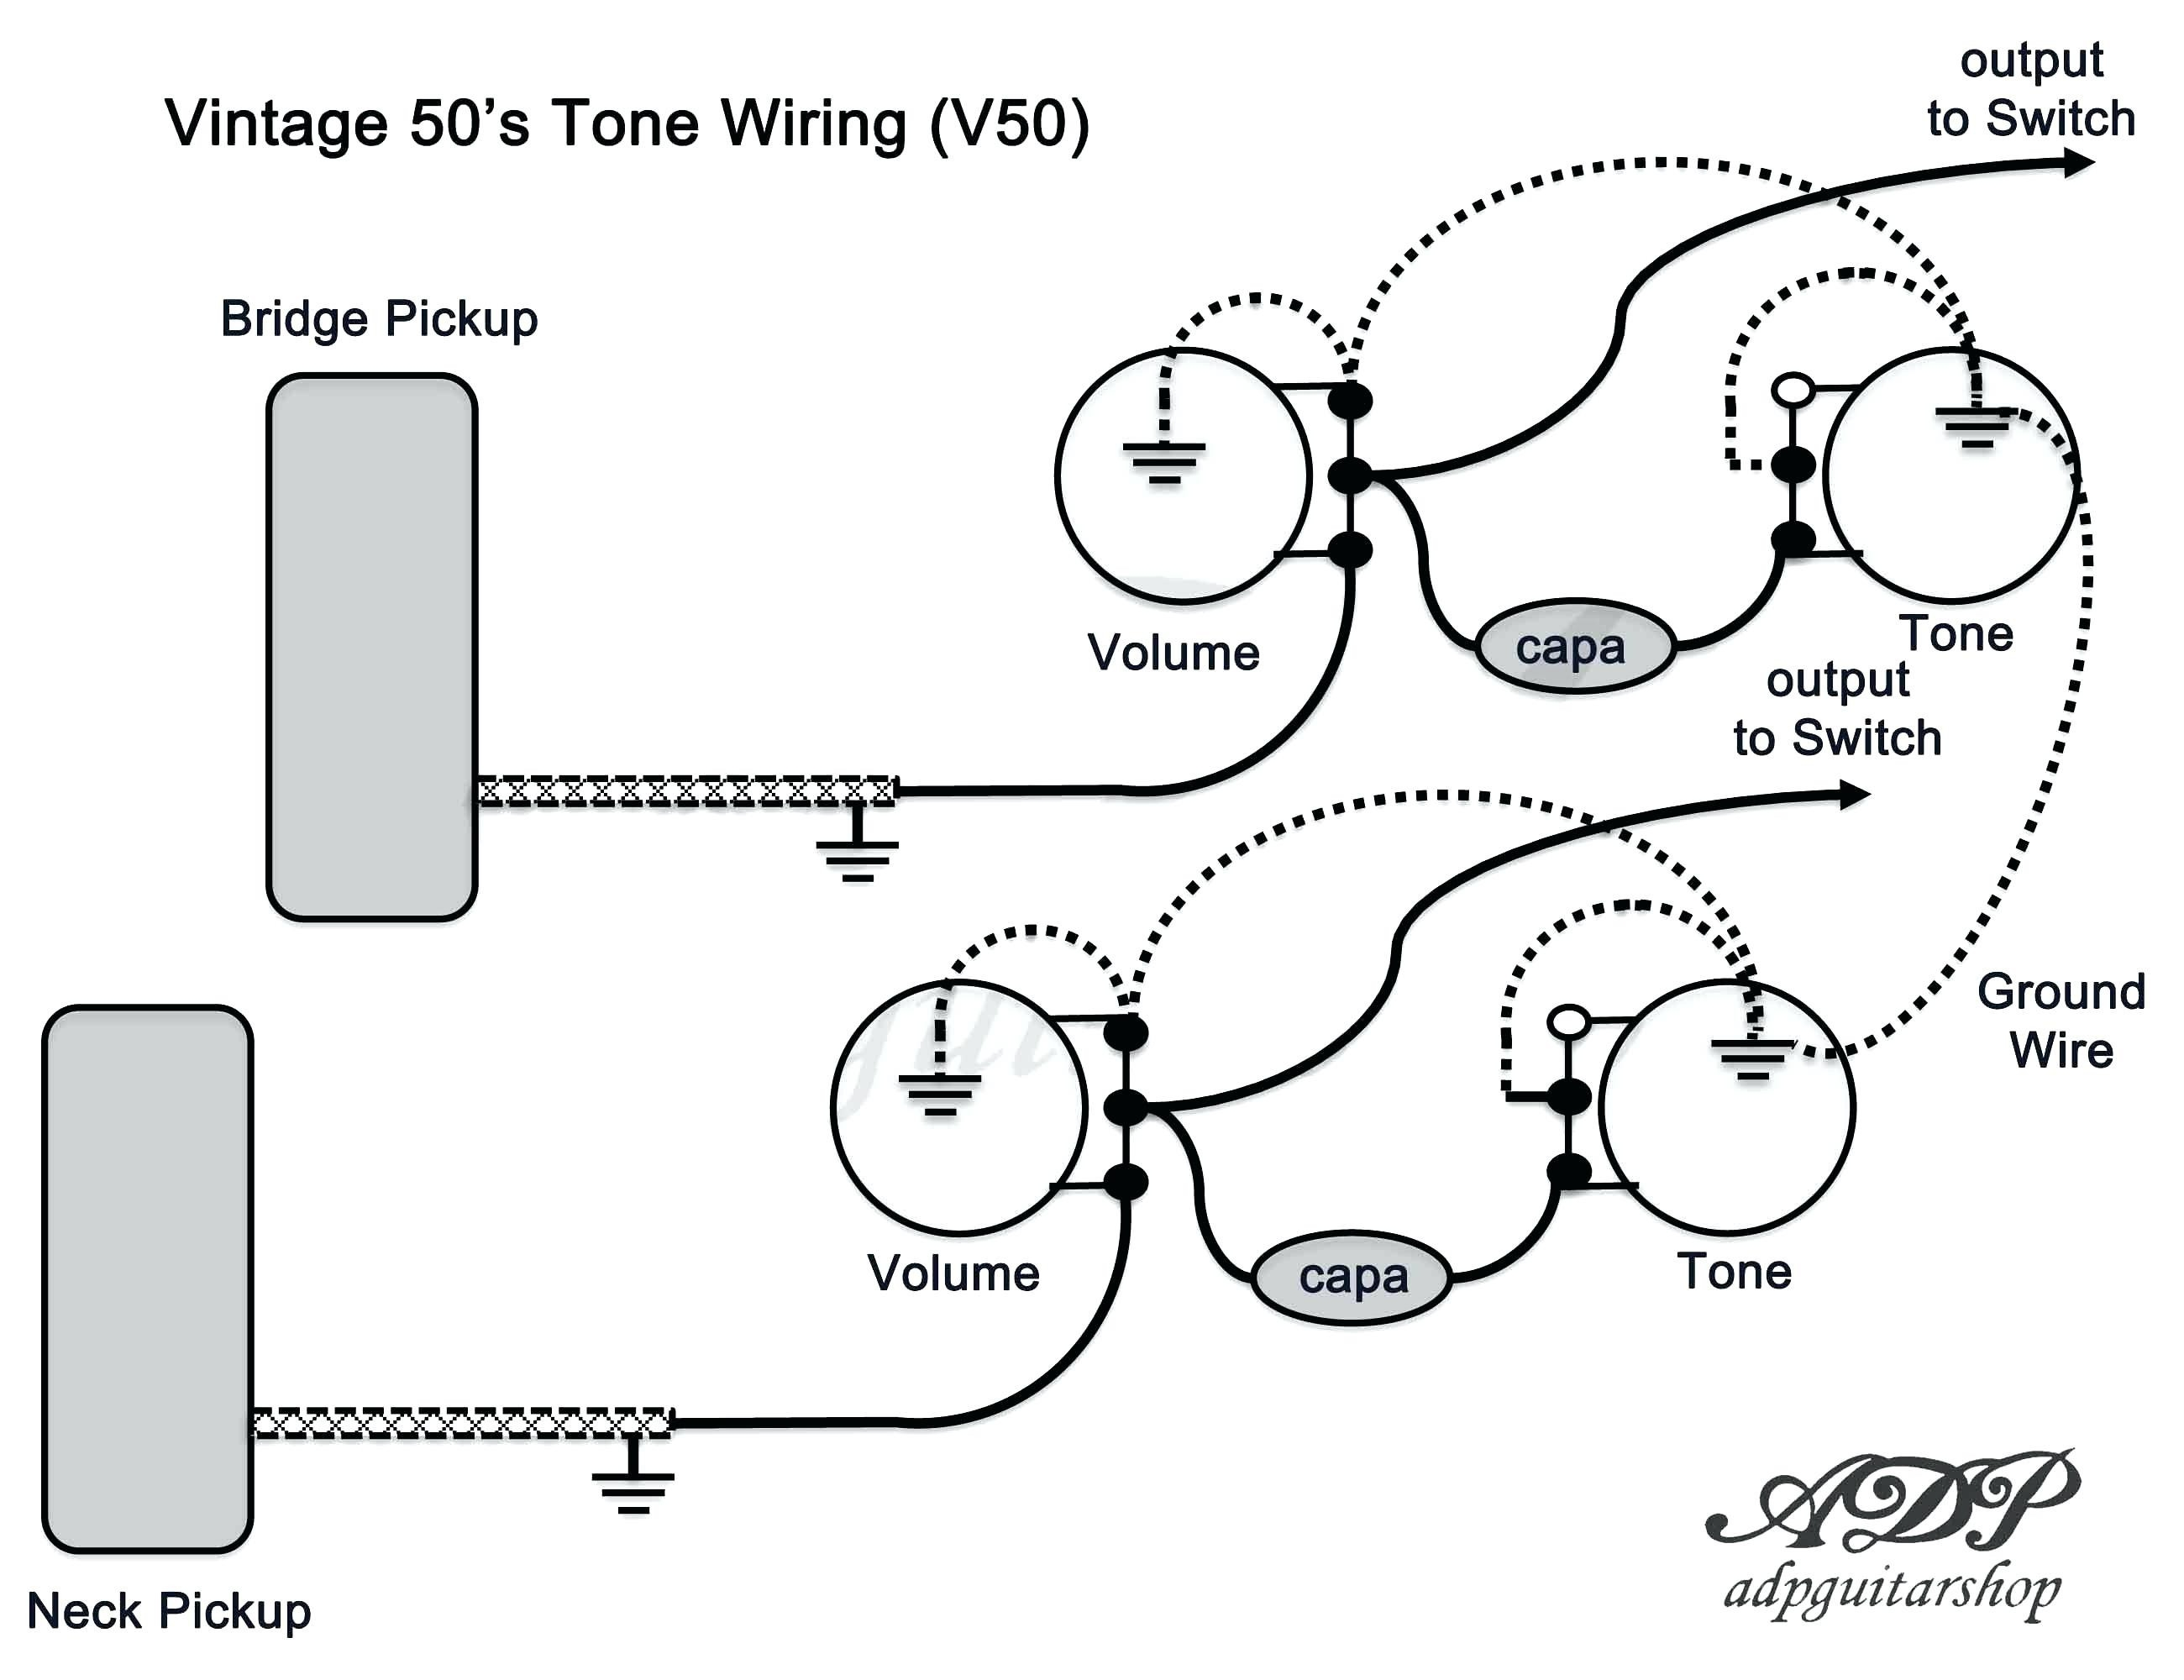 gibson sg wiring schematic Download-Wiring Diagram for Gibson Sg Valid Gibson Sg Wiring Diagram New Gibson Sg Standard Wiring Diagram 9-q